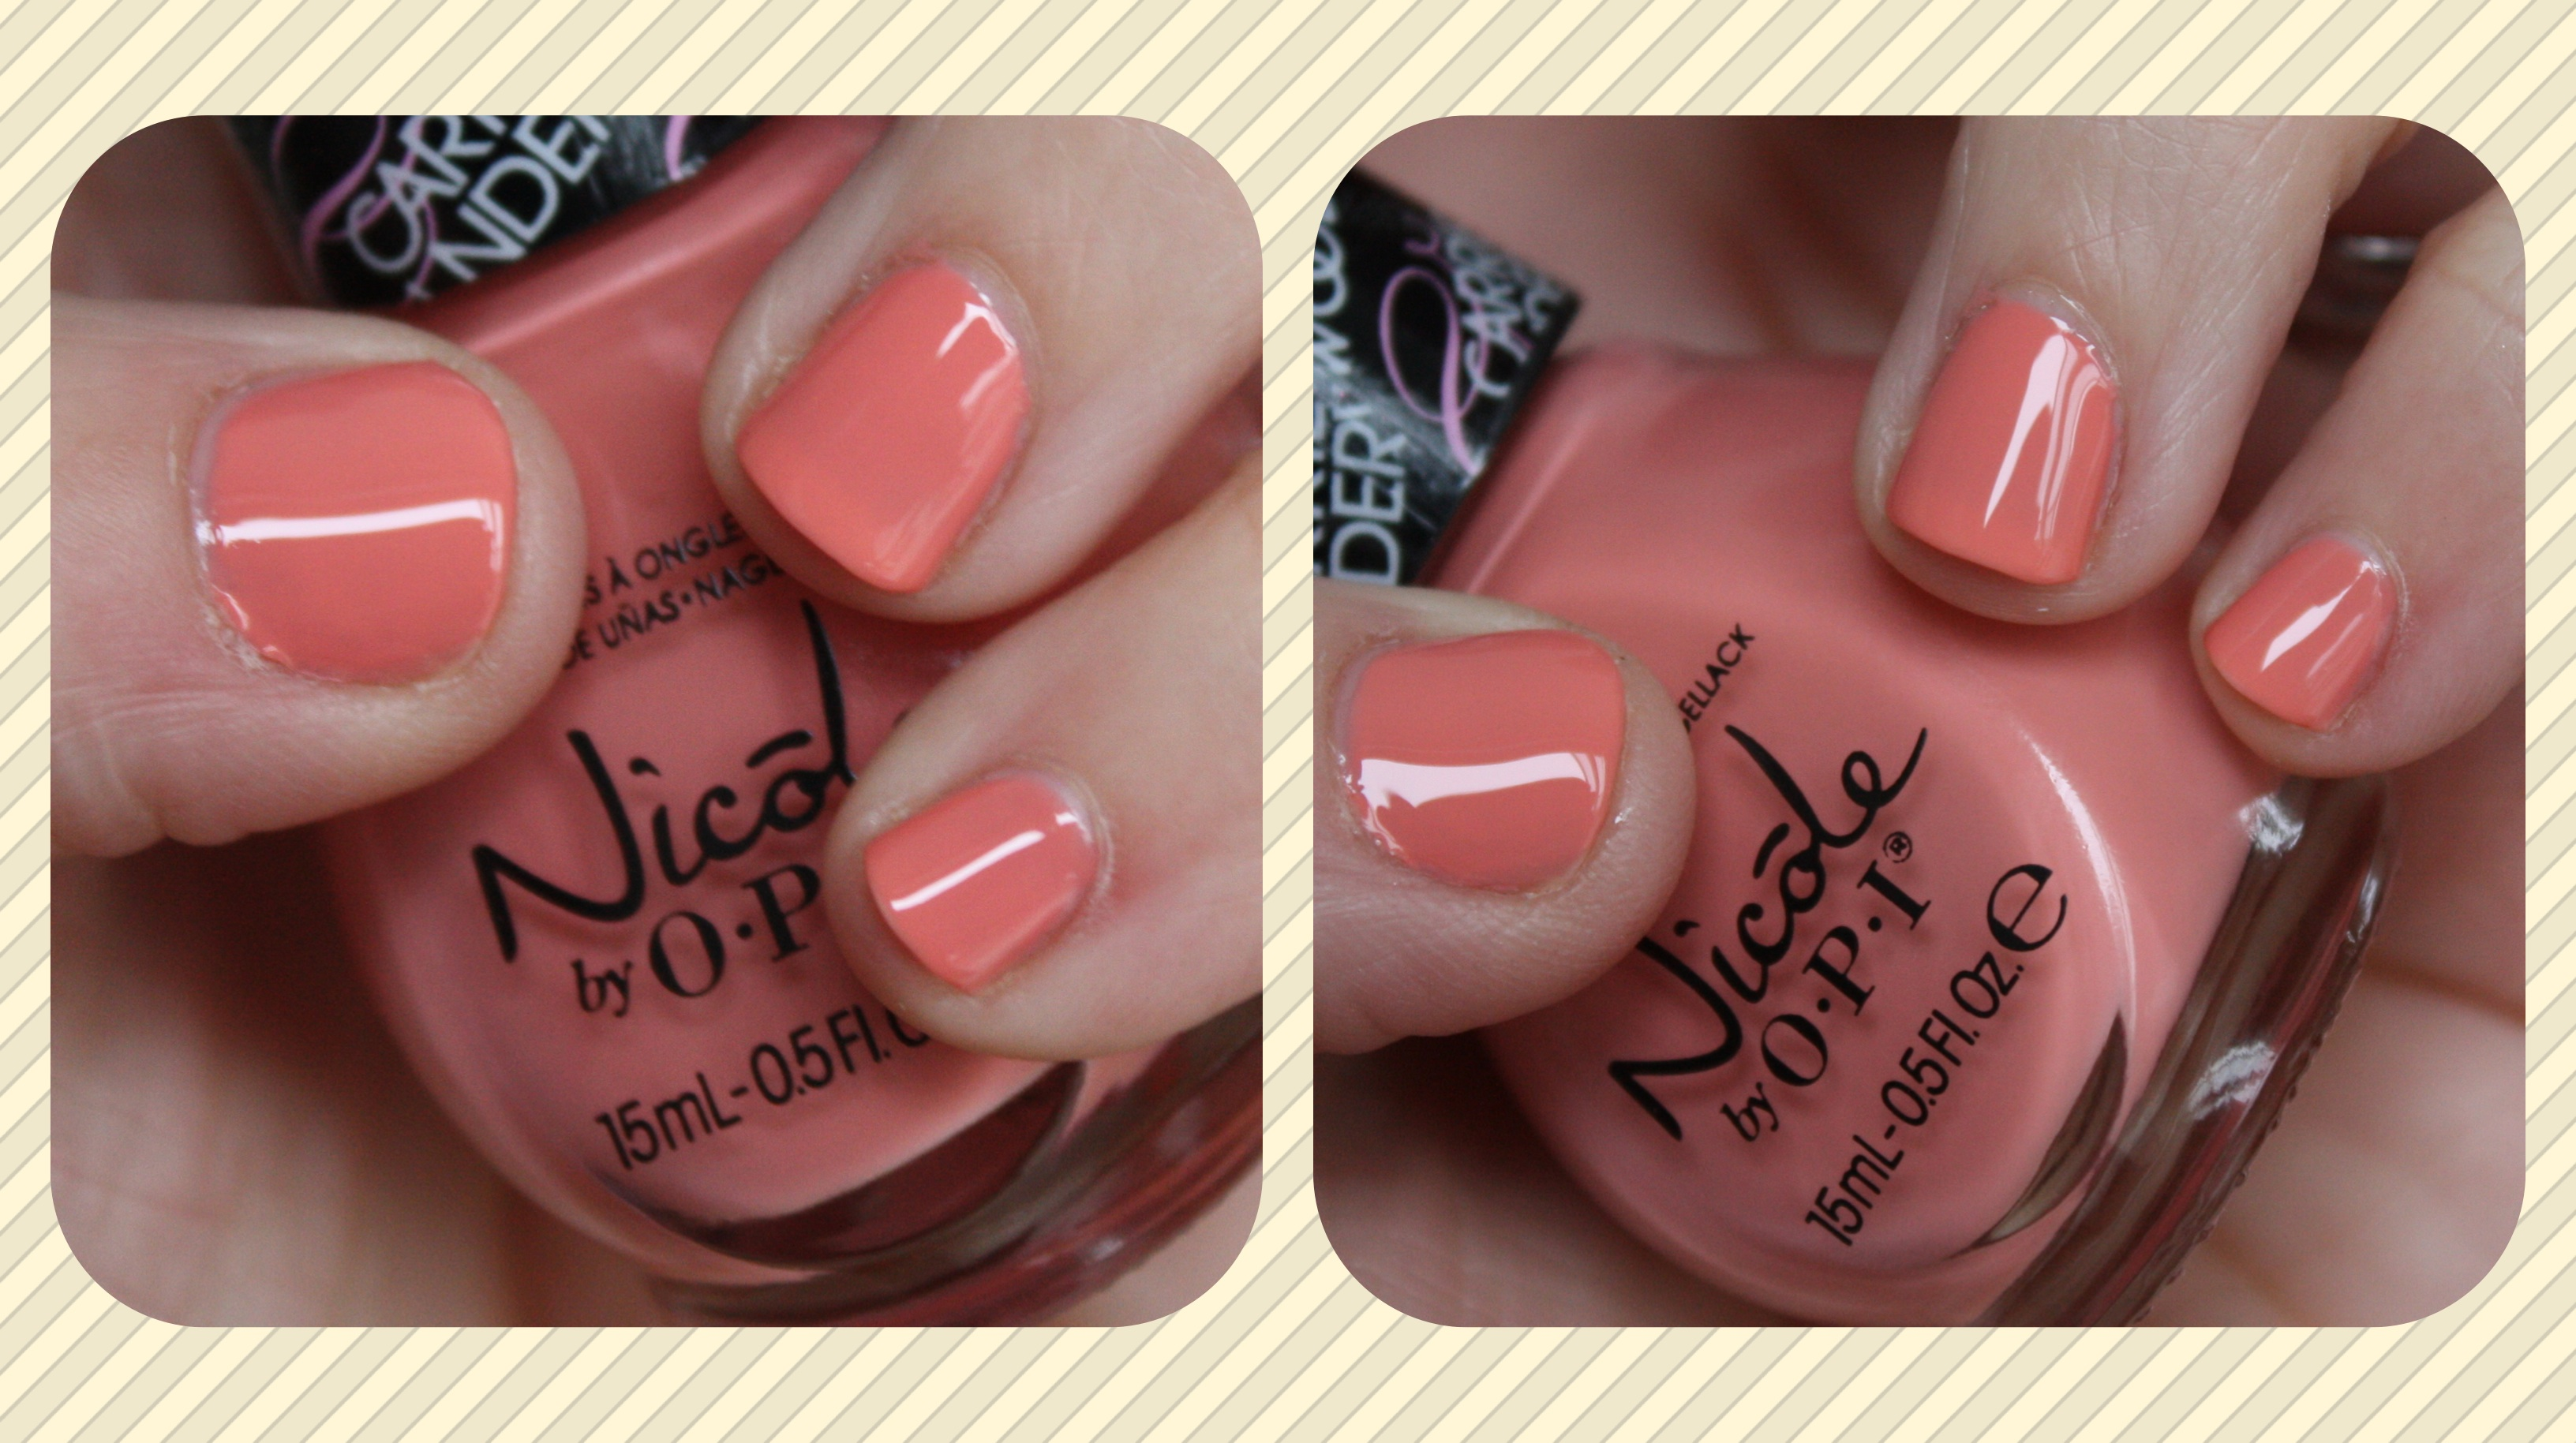 Nicole by OPI – horrendous color